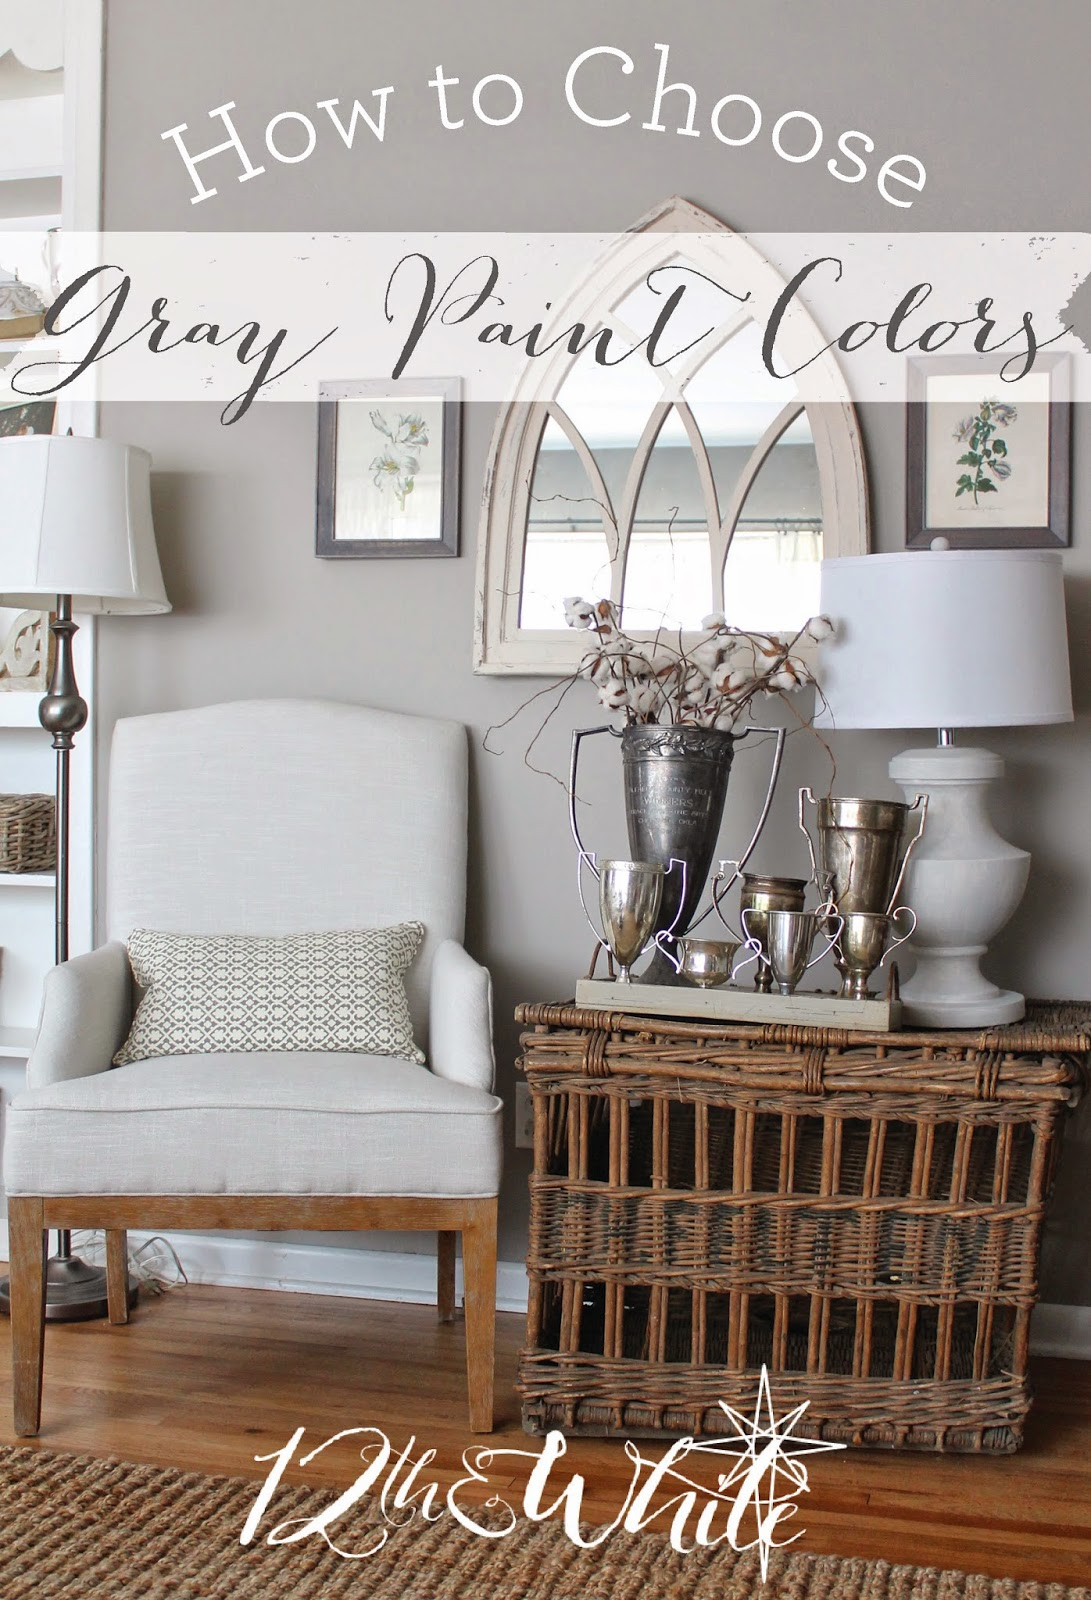 12th and white how to choose gray paint colors - Choose color scheme every room ...